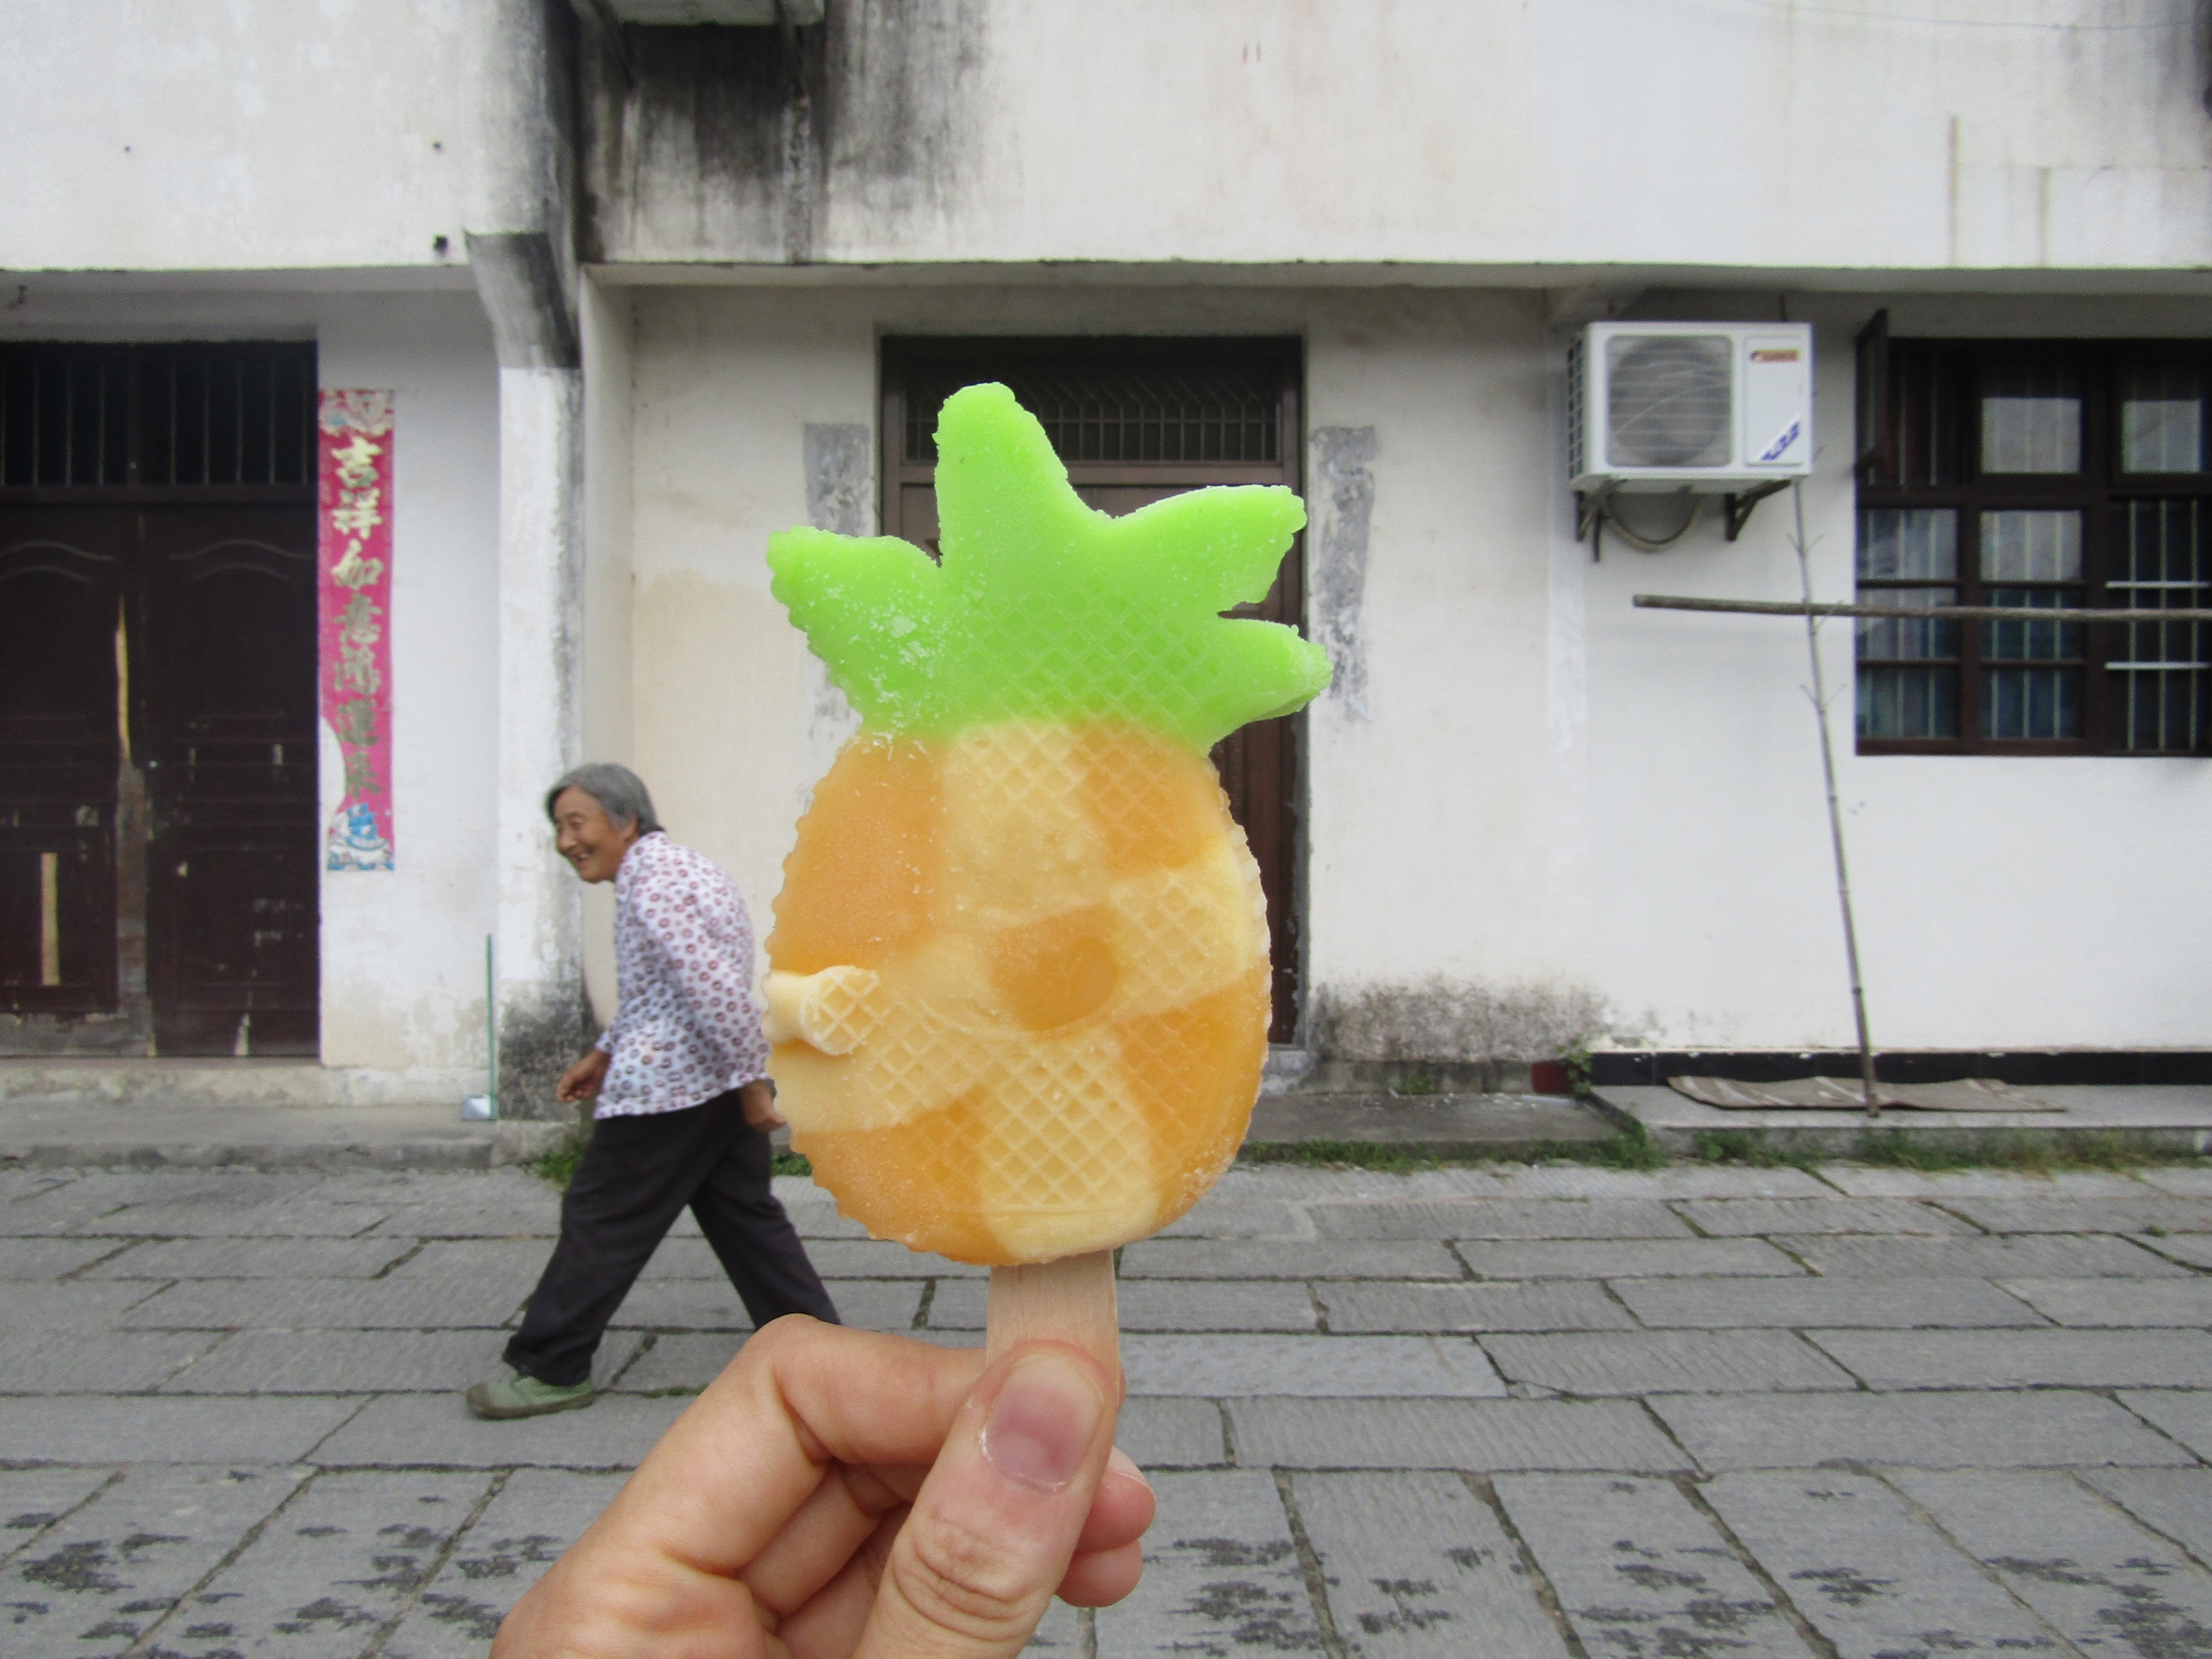 Nothing like a frozen treat on a hot and humid Chinese summer day. Viktoria snapped this photo of her pineapple pop as I caught the eye of the lady entering the background. She was really getting a kick out of the level of artistry going into the ice-sucker selfie.